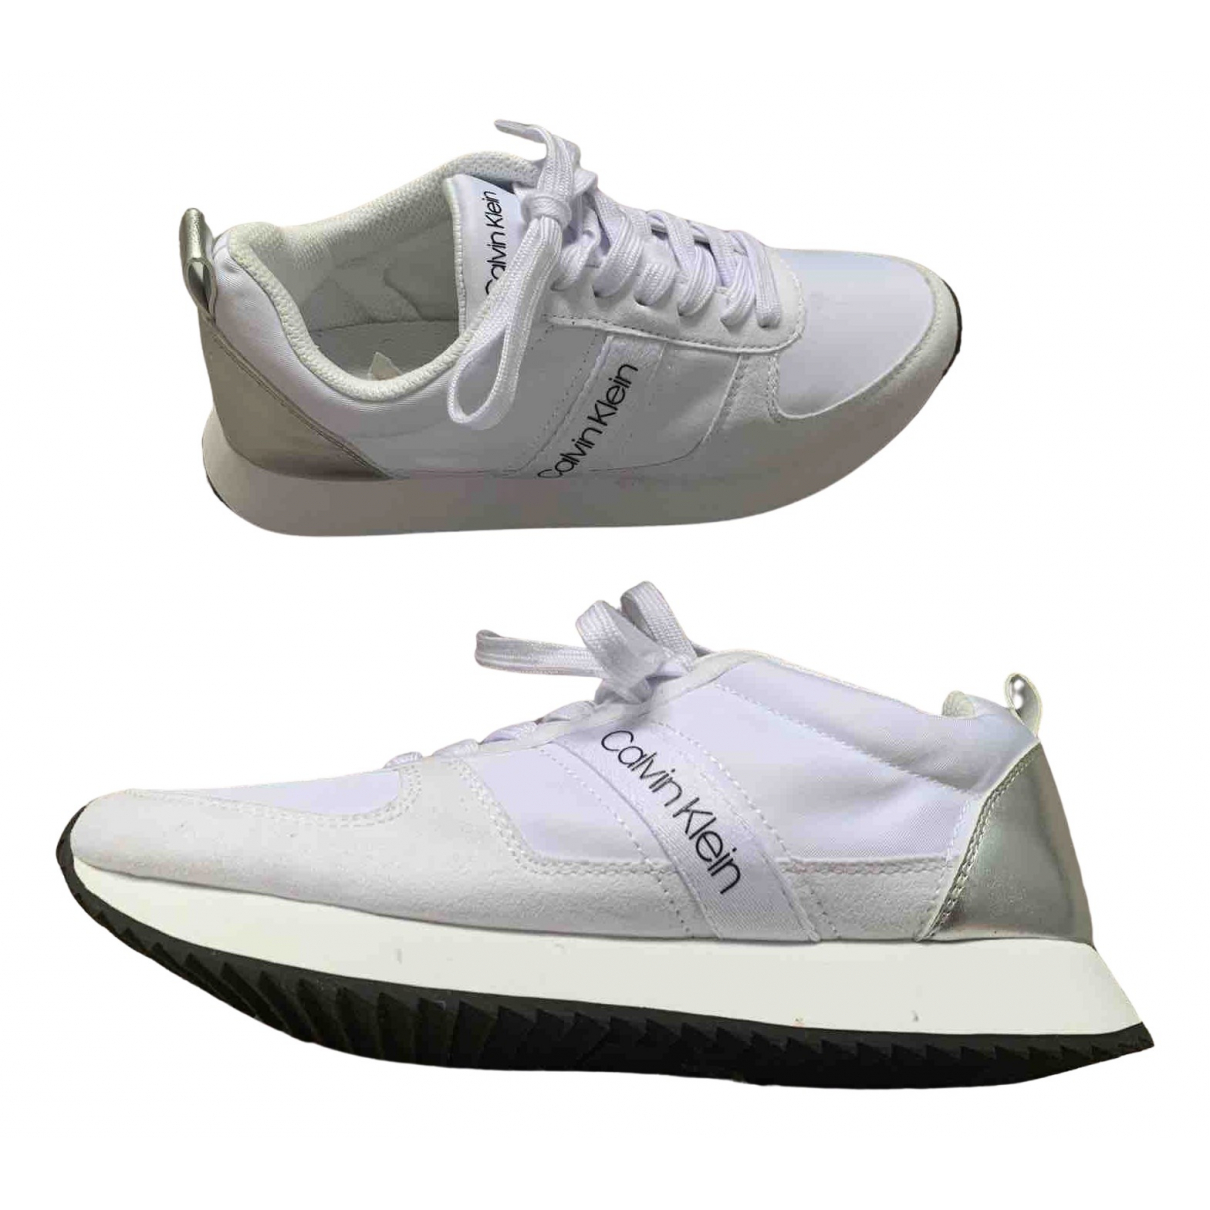 Michael Kors N White Leather Trainers for Women 5 UK